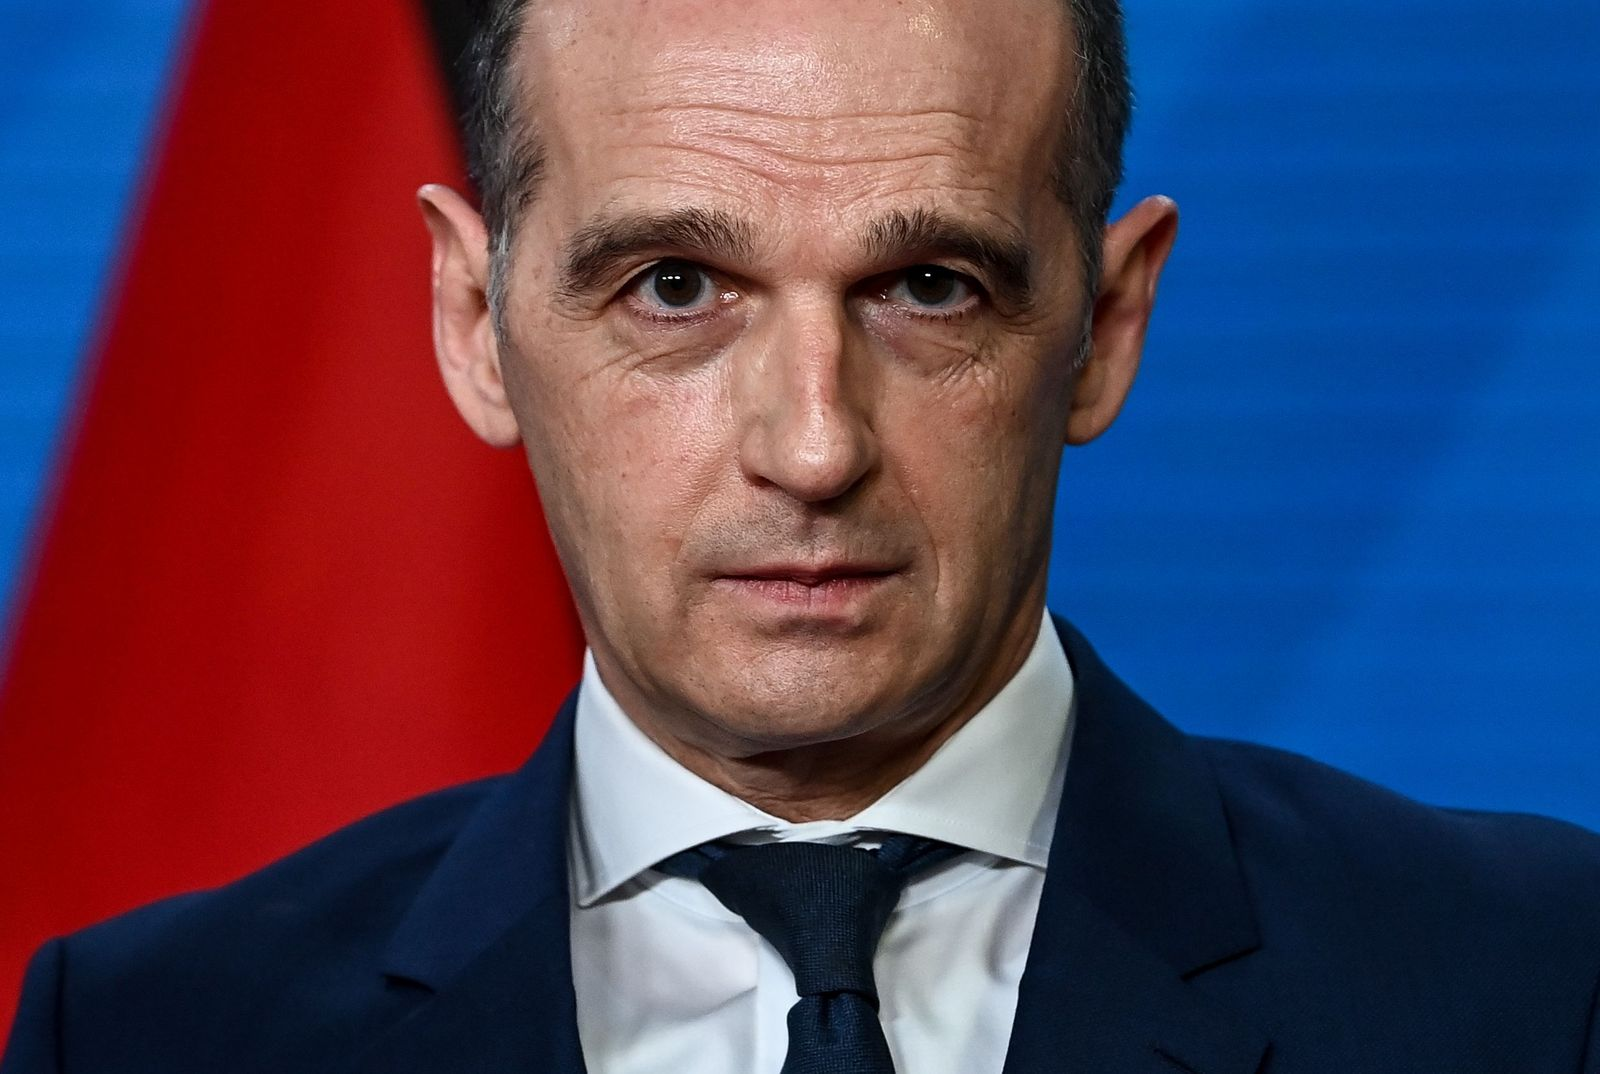 German Foreign Minister Maas meets Montenegro Foreign Minister Dorde Radulovic, Berlin, Germany - 15 Jan 2021